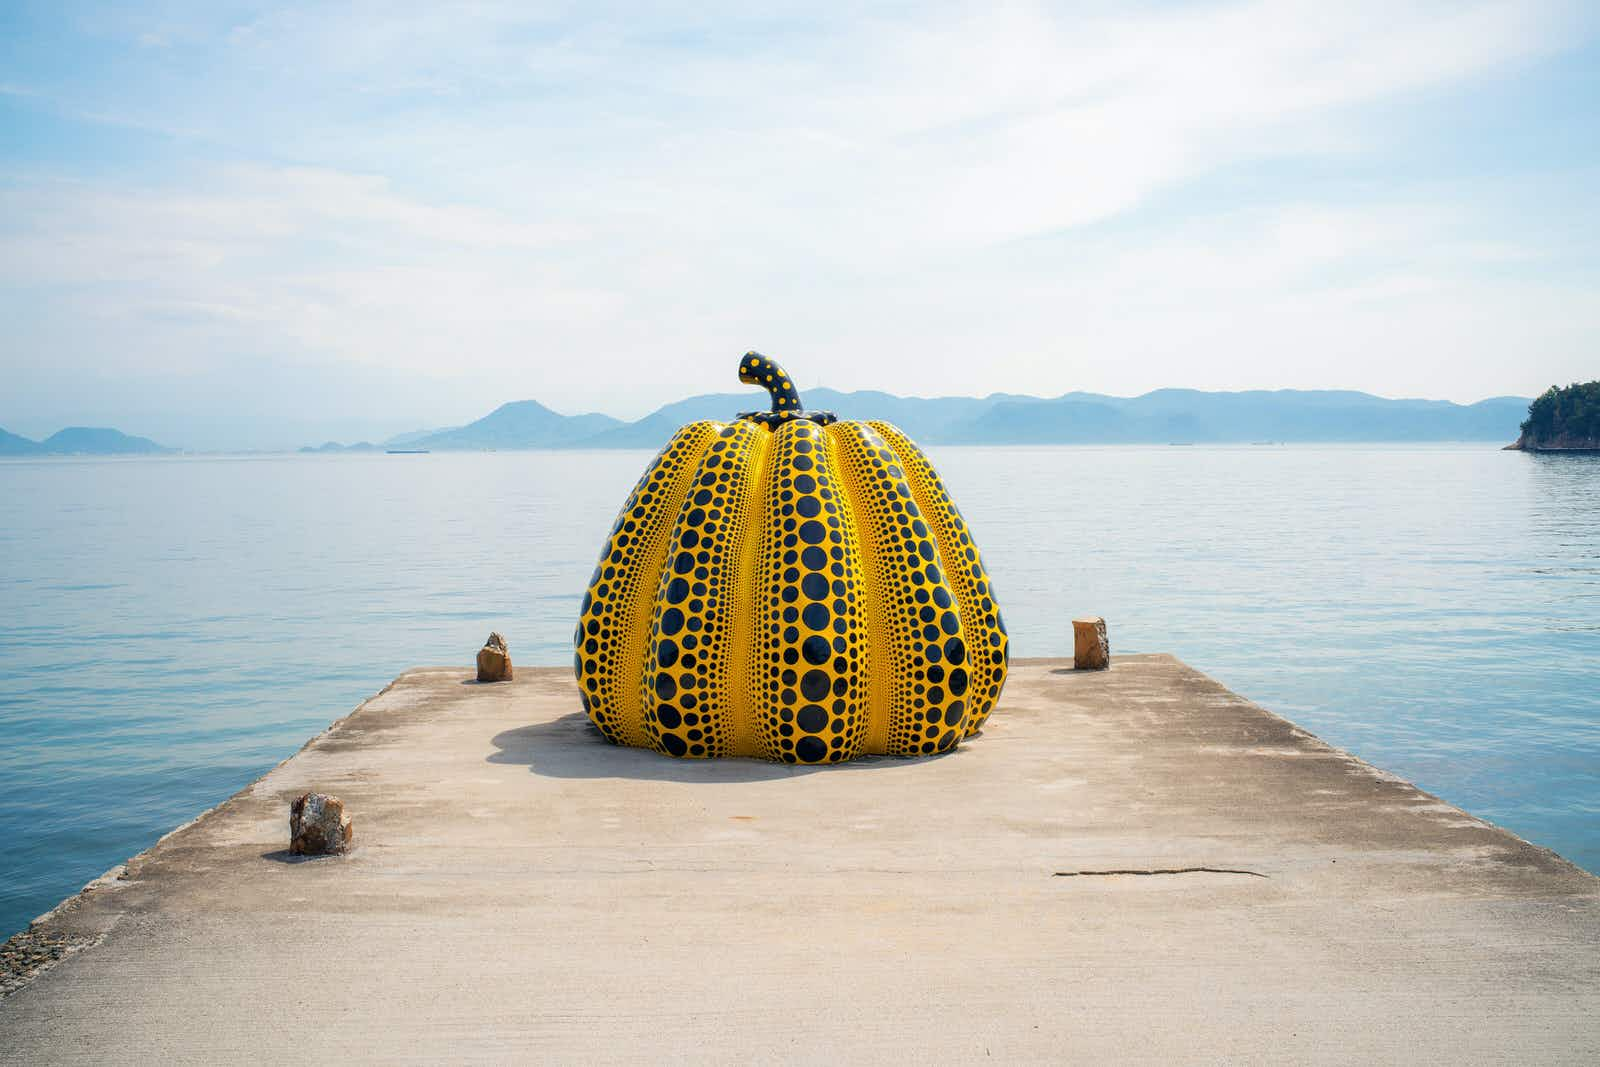 A giant yellow and black pumpkin sculpture at the end of a concrete jetty in front of the sea in Naoshima, with hilly islands visible in the background